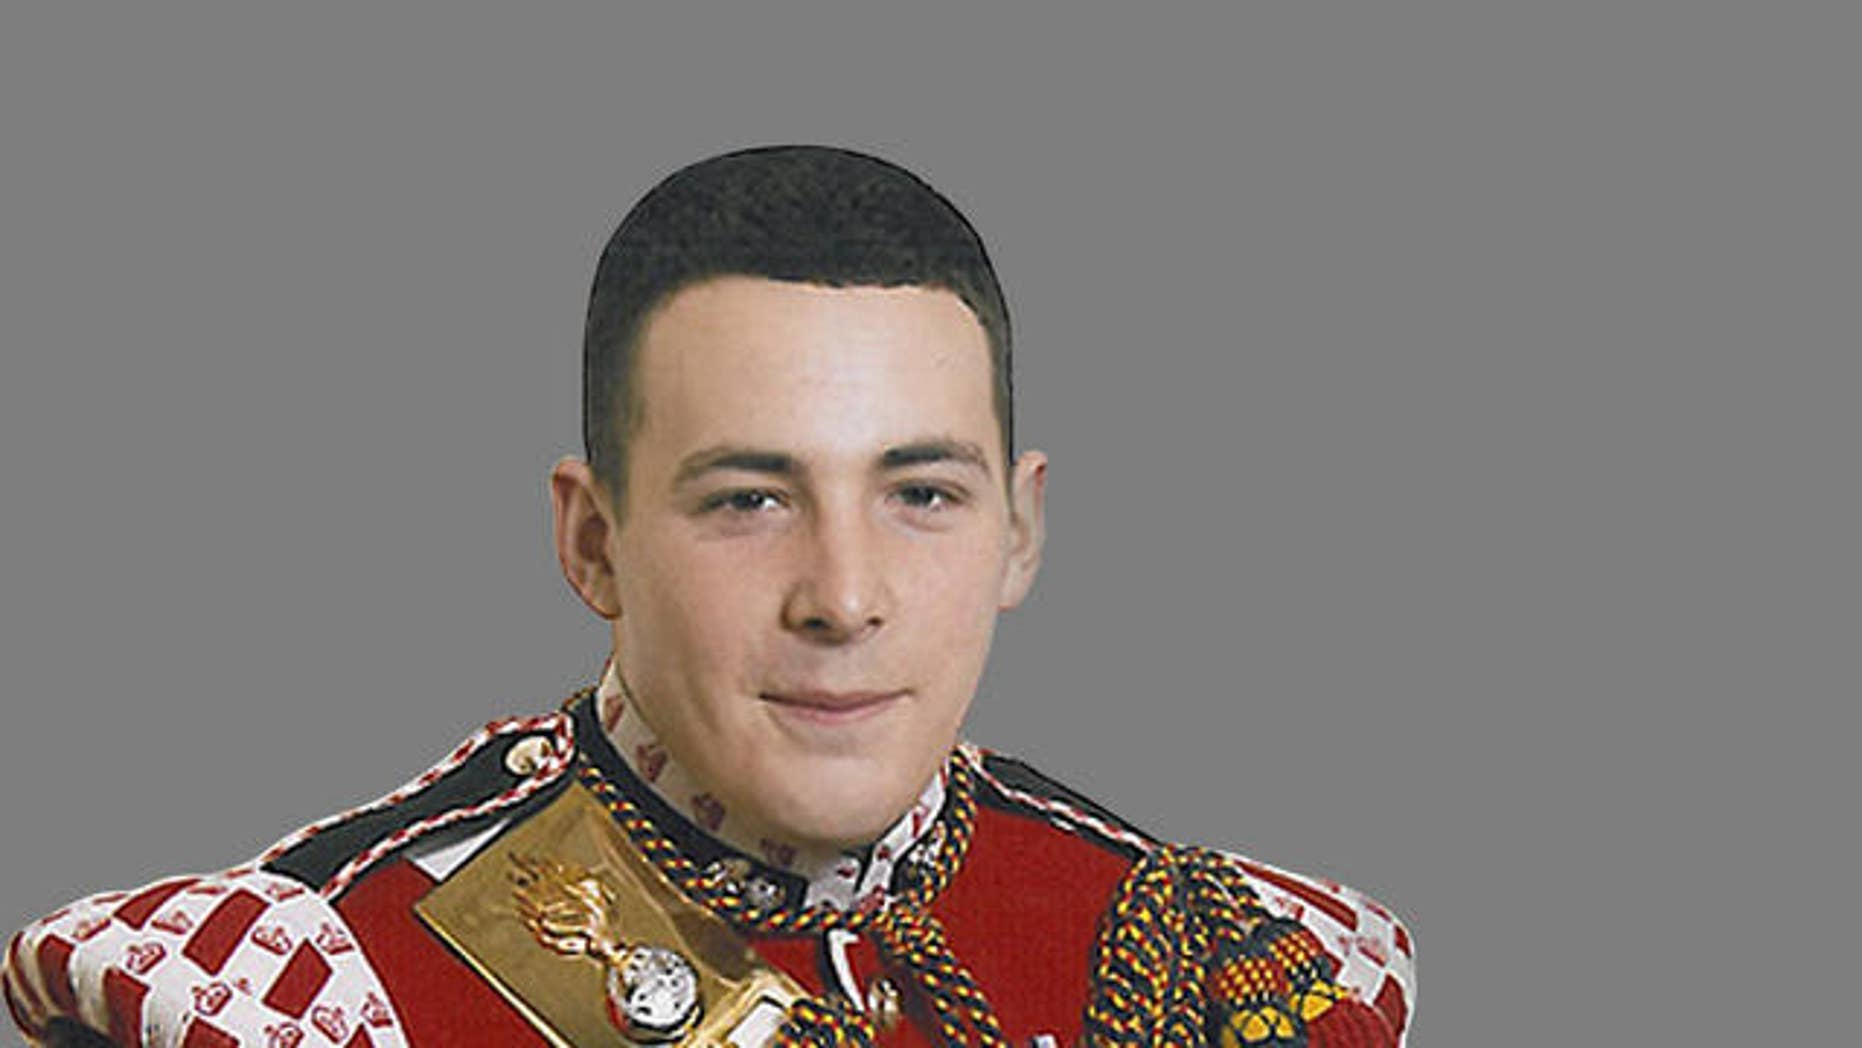 May 23, 2013 - FILE photo of Lee Rigby, member of the British armed forces who was attacked and killed in Woolwich, London.